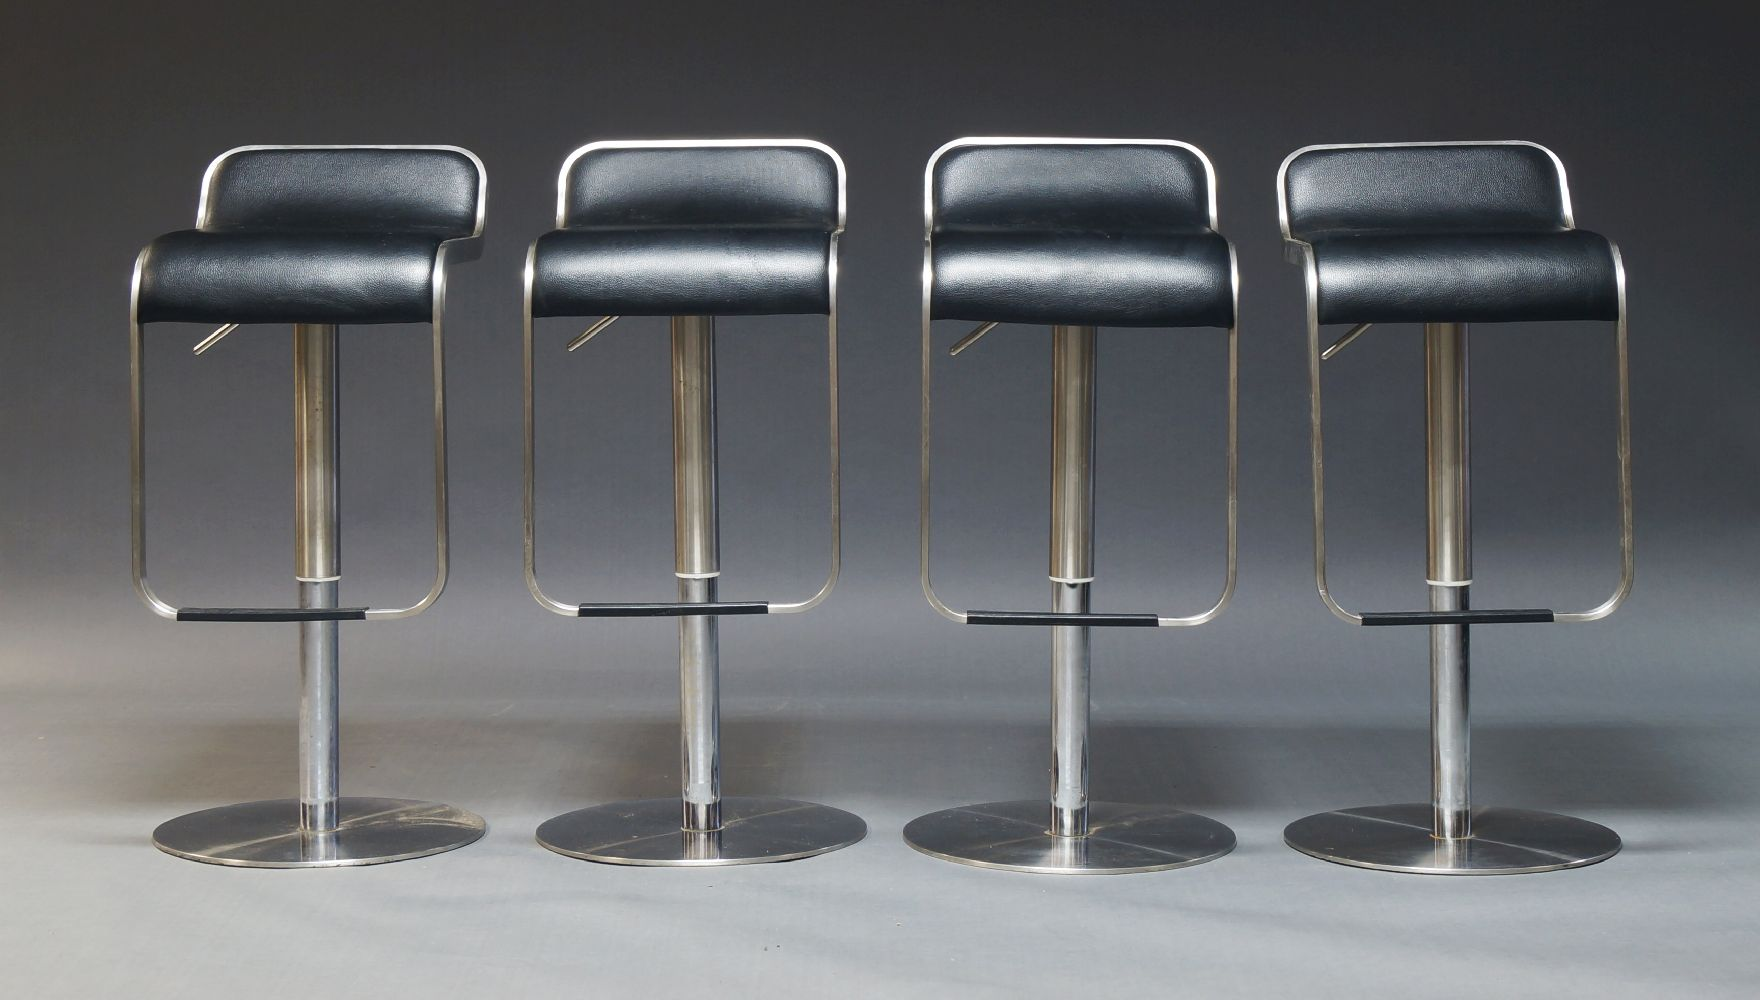 After Shin & Tomoko Azumi, a set of four adjustable bar stools, with black leather seats, on